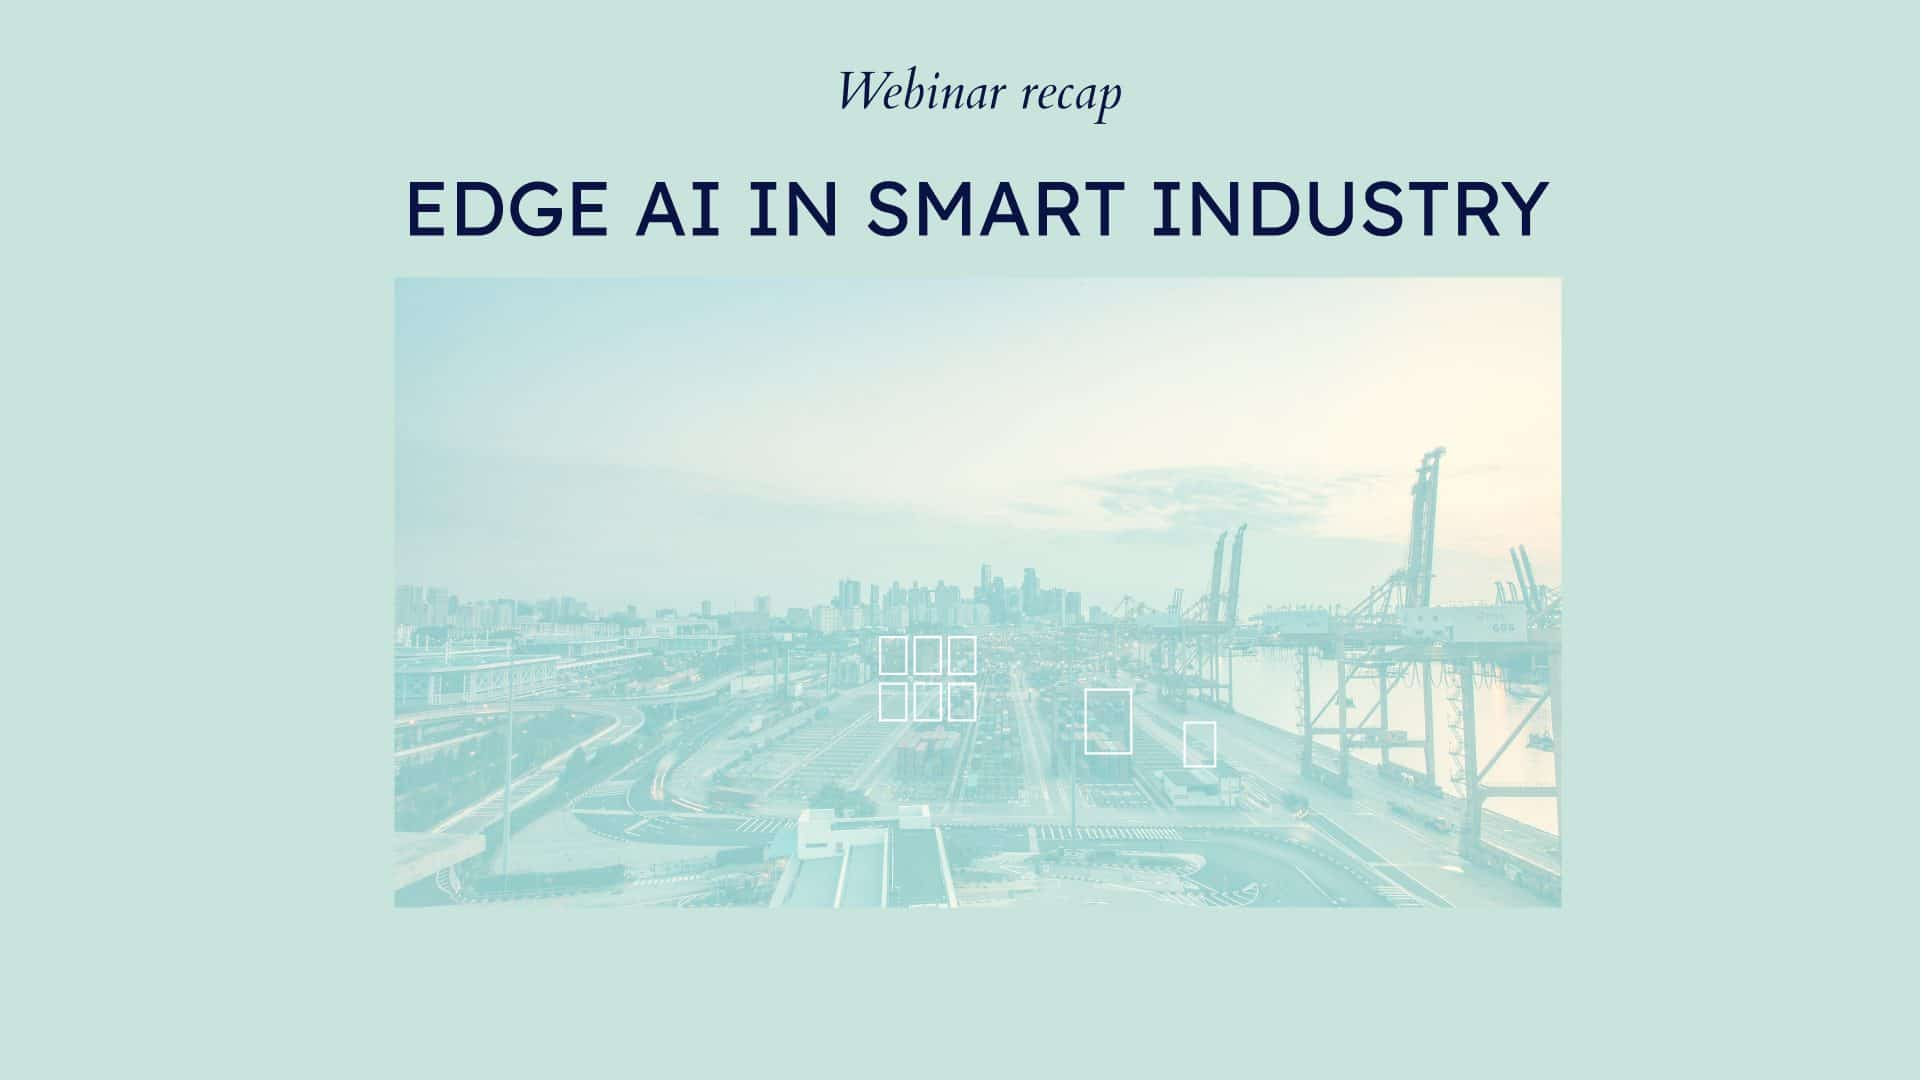 Webinar recap: Edge AI in Smart Industry